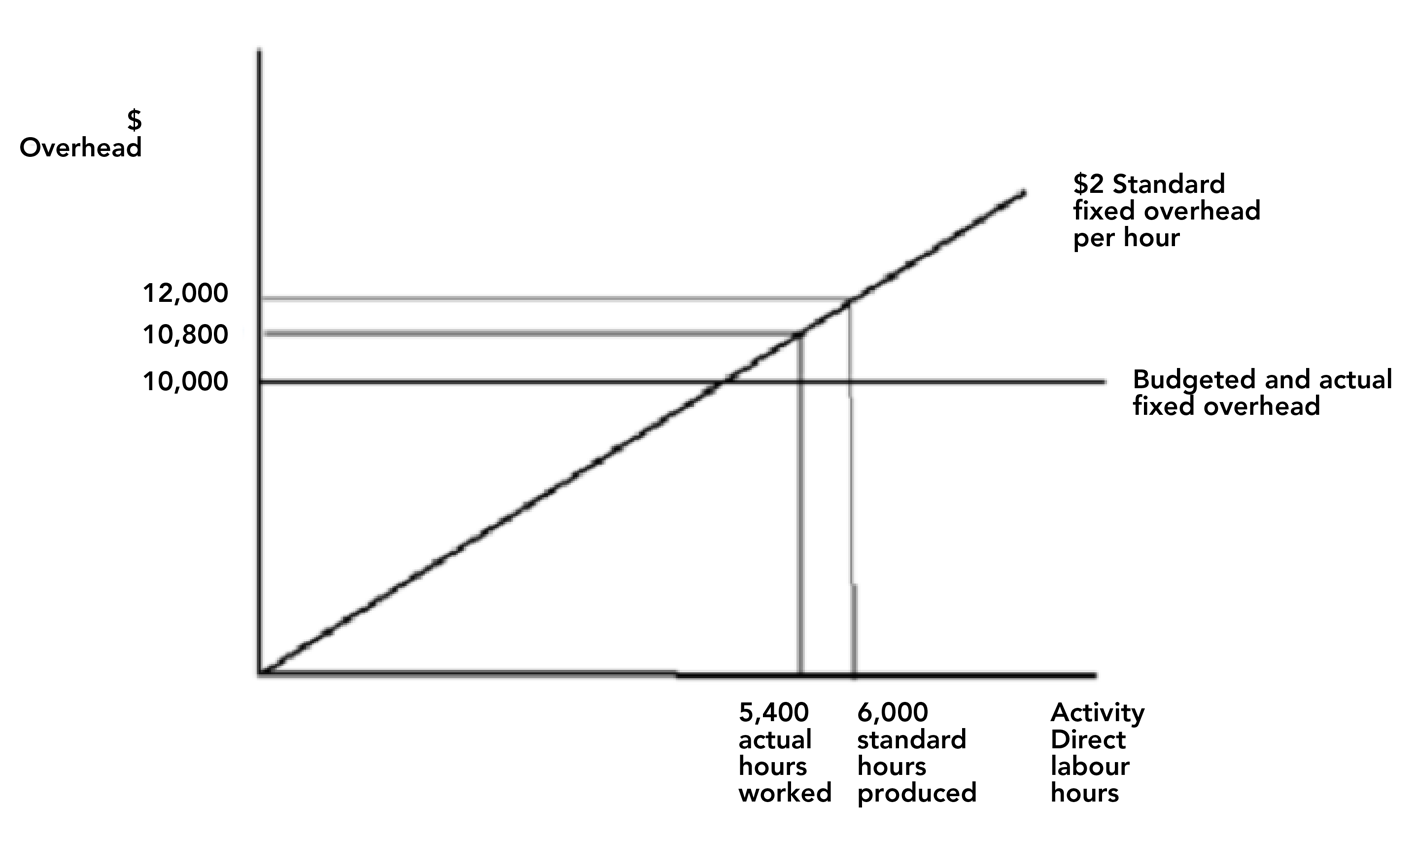 Fixed overhead absorption | ACCA Global